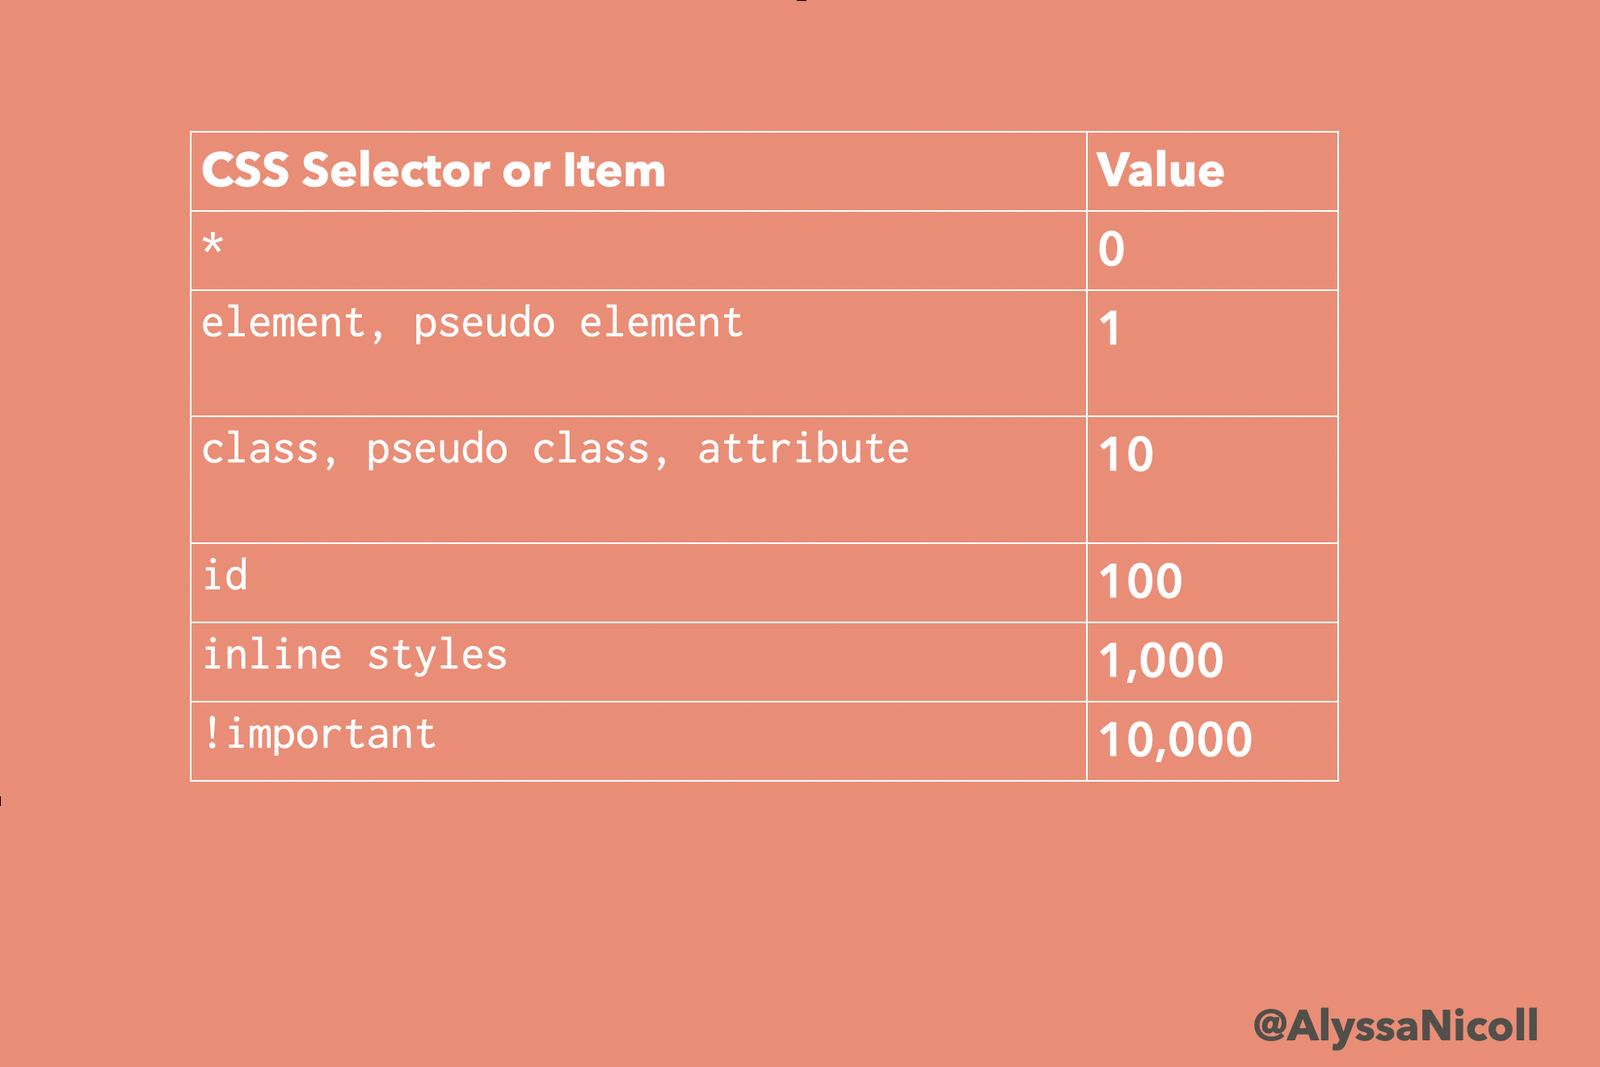 a chart with the CSS selectors and their values